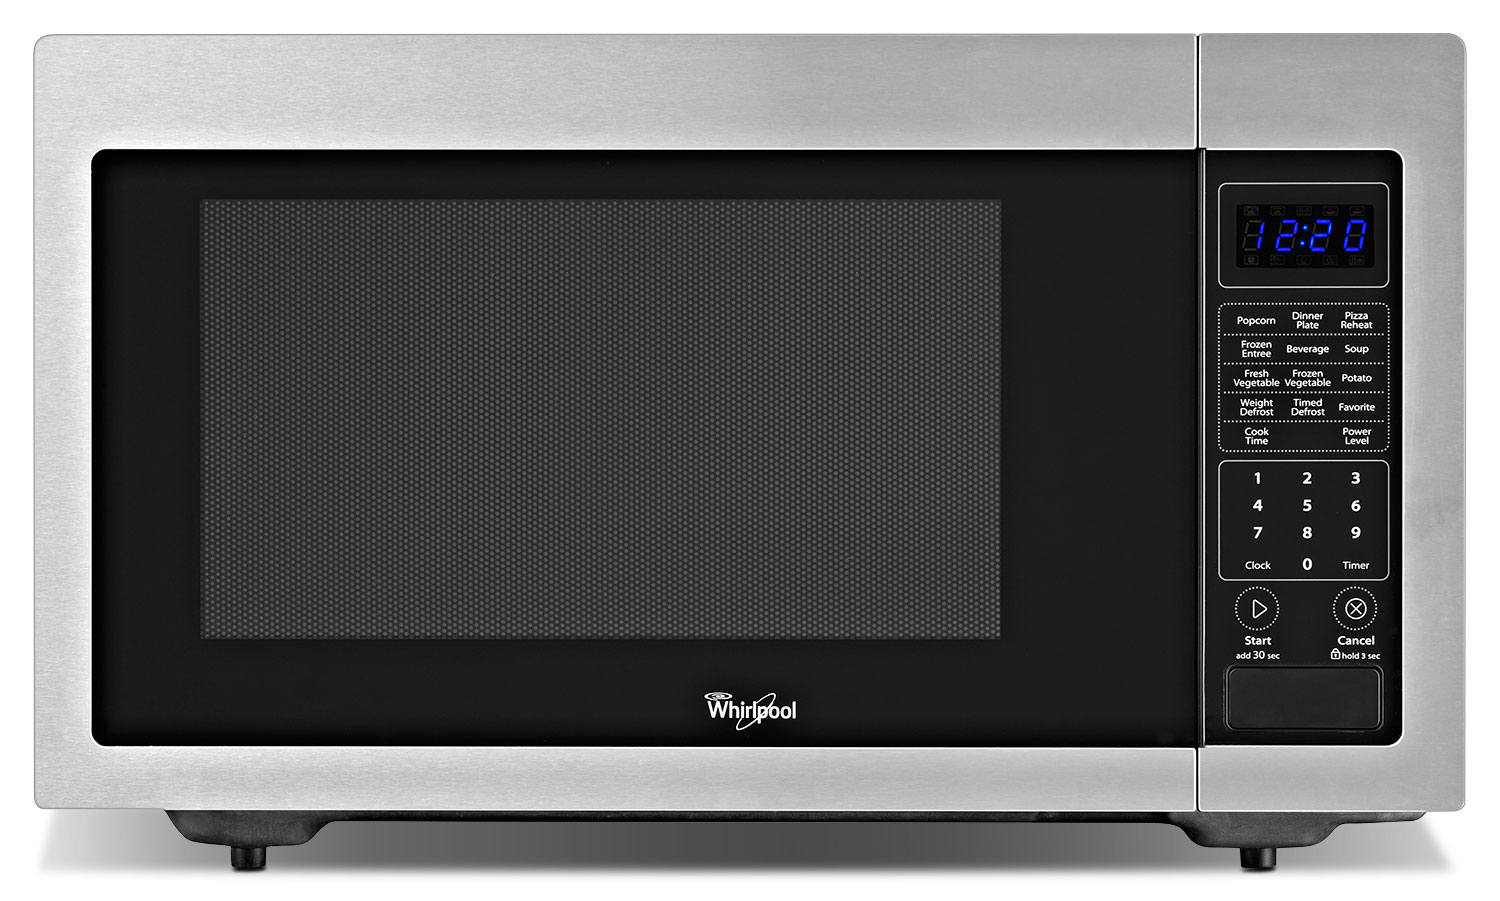 Whirlpool Stainless Steel Countertop Microwave (1.6 Cu. Ft.) - YWMC30516DS